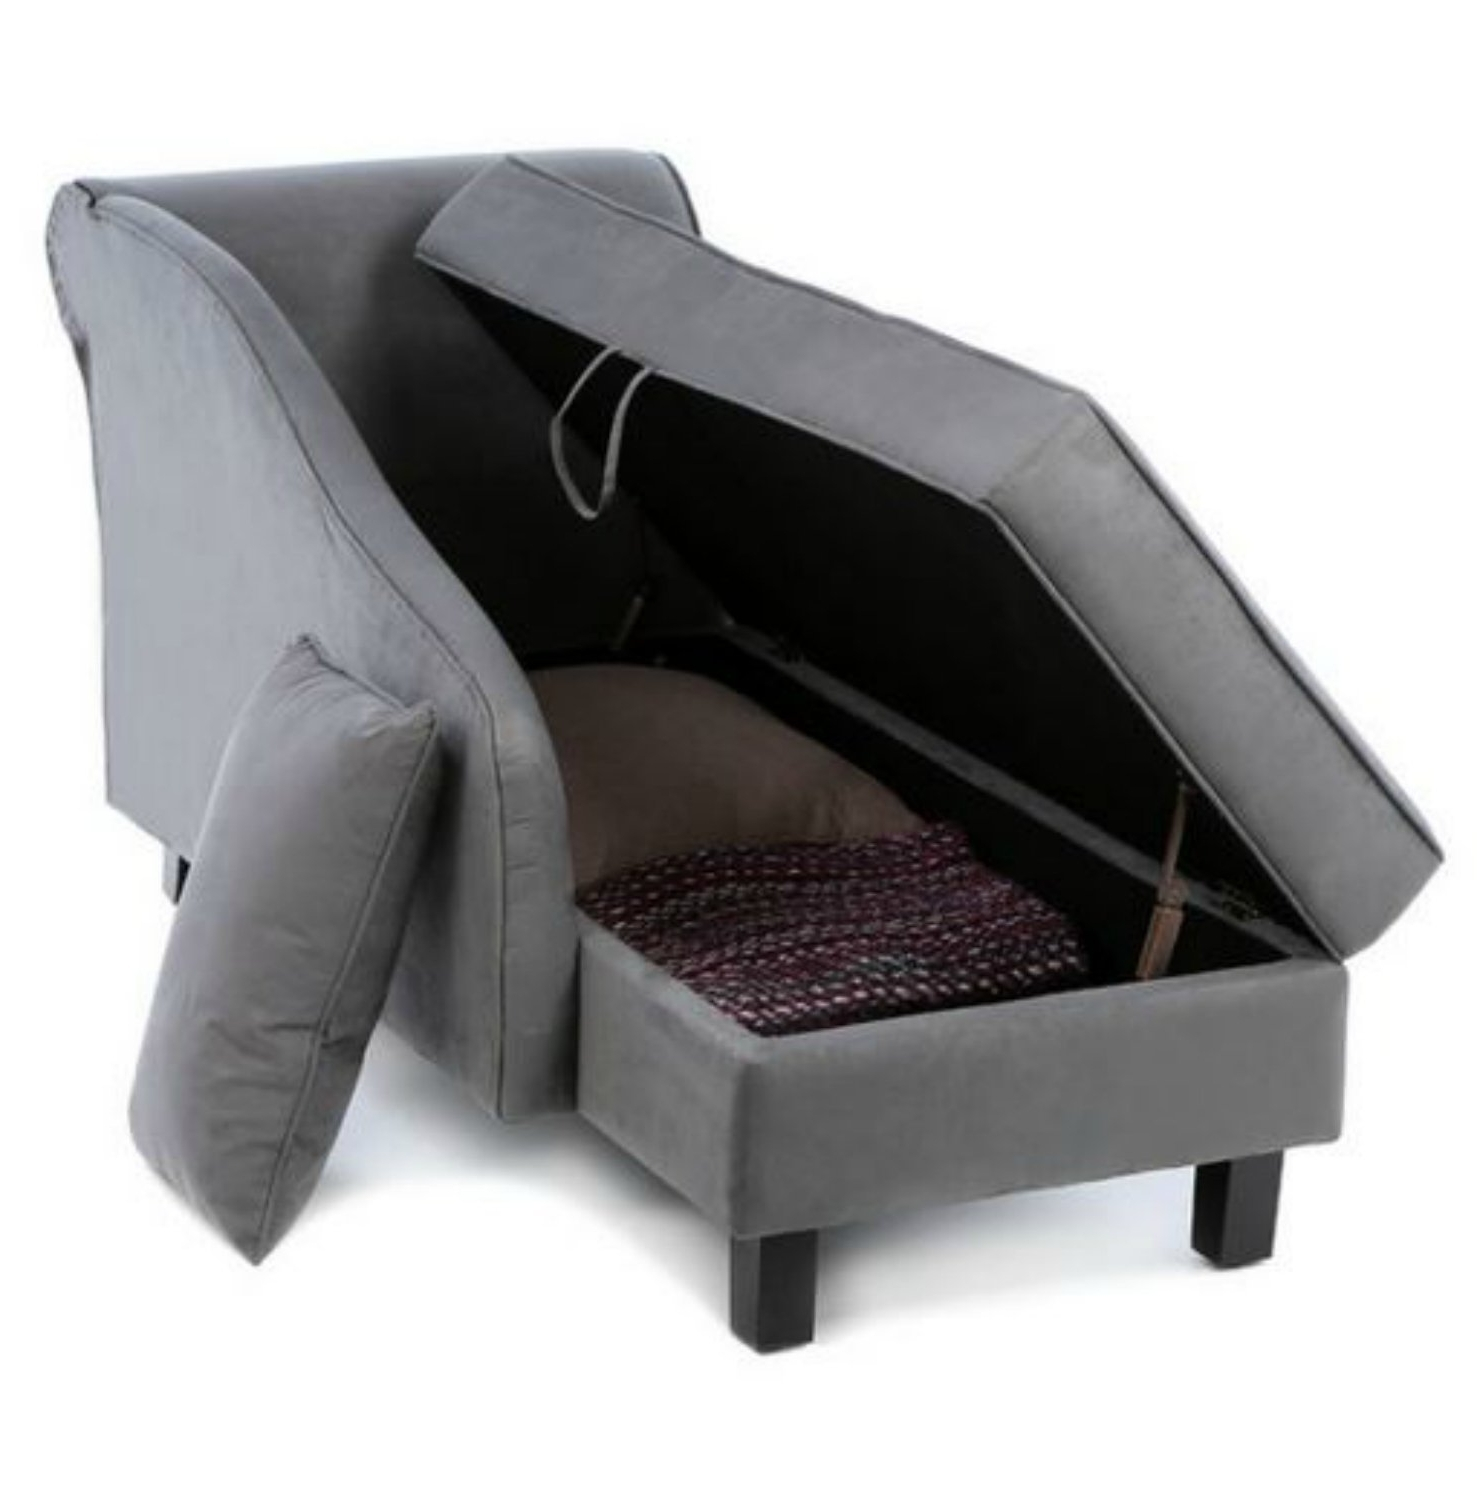 Widely Used Amazon: Storage Chaise Lounge Chair  This Microfiber In Grey Chaise Lounge Chairs (View 6 of 15)